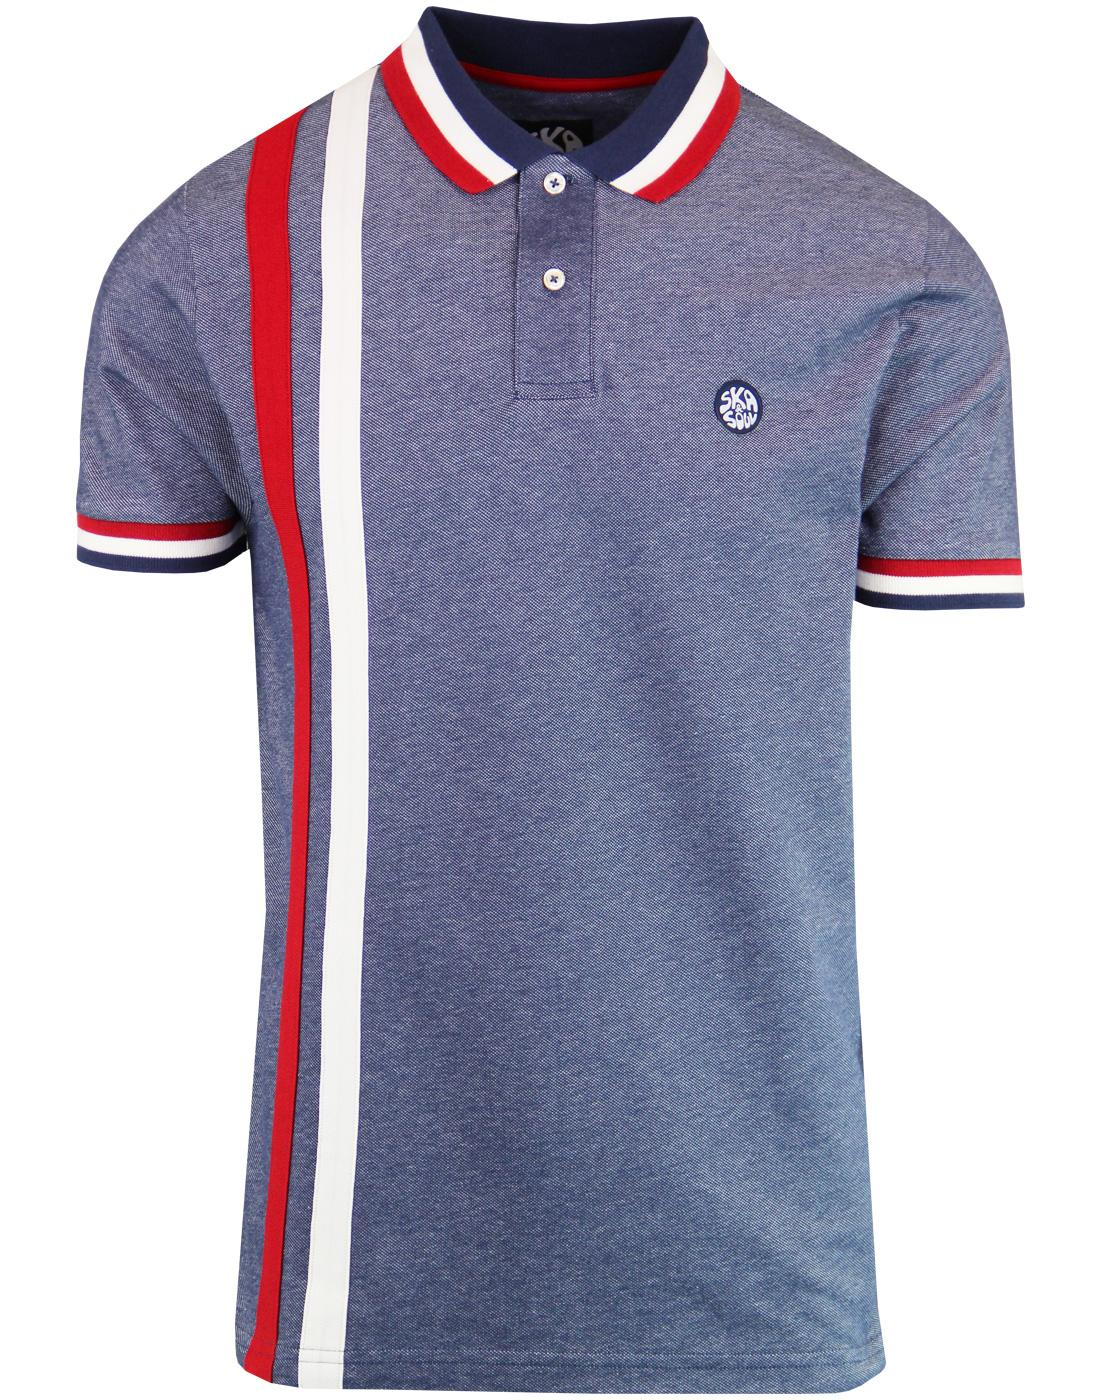 SKA & SOUL Mod Racing Stripe Oxford Polo Top NAVY